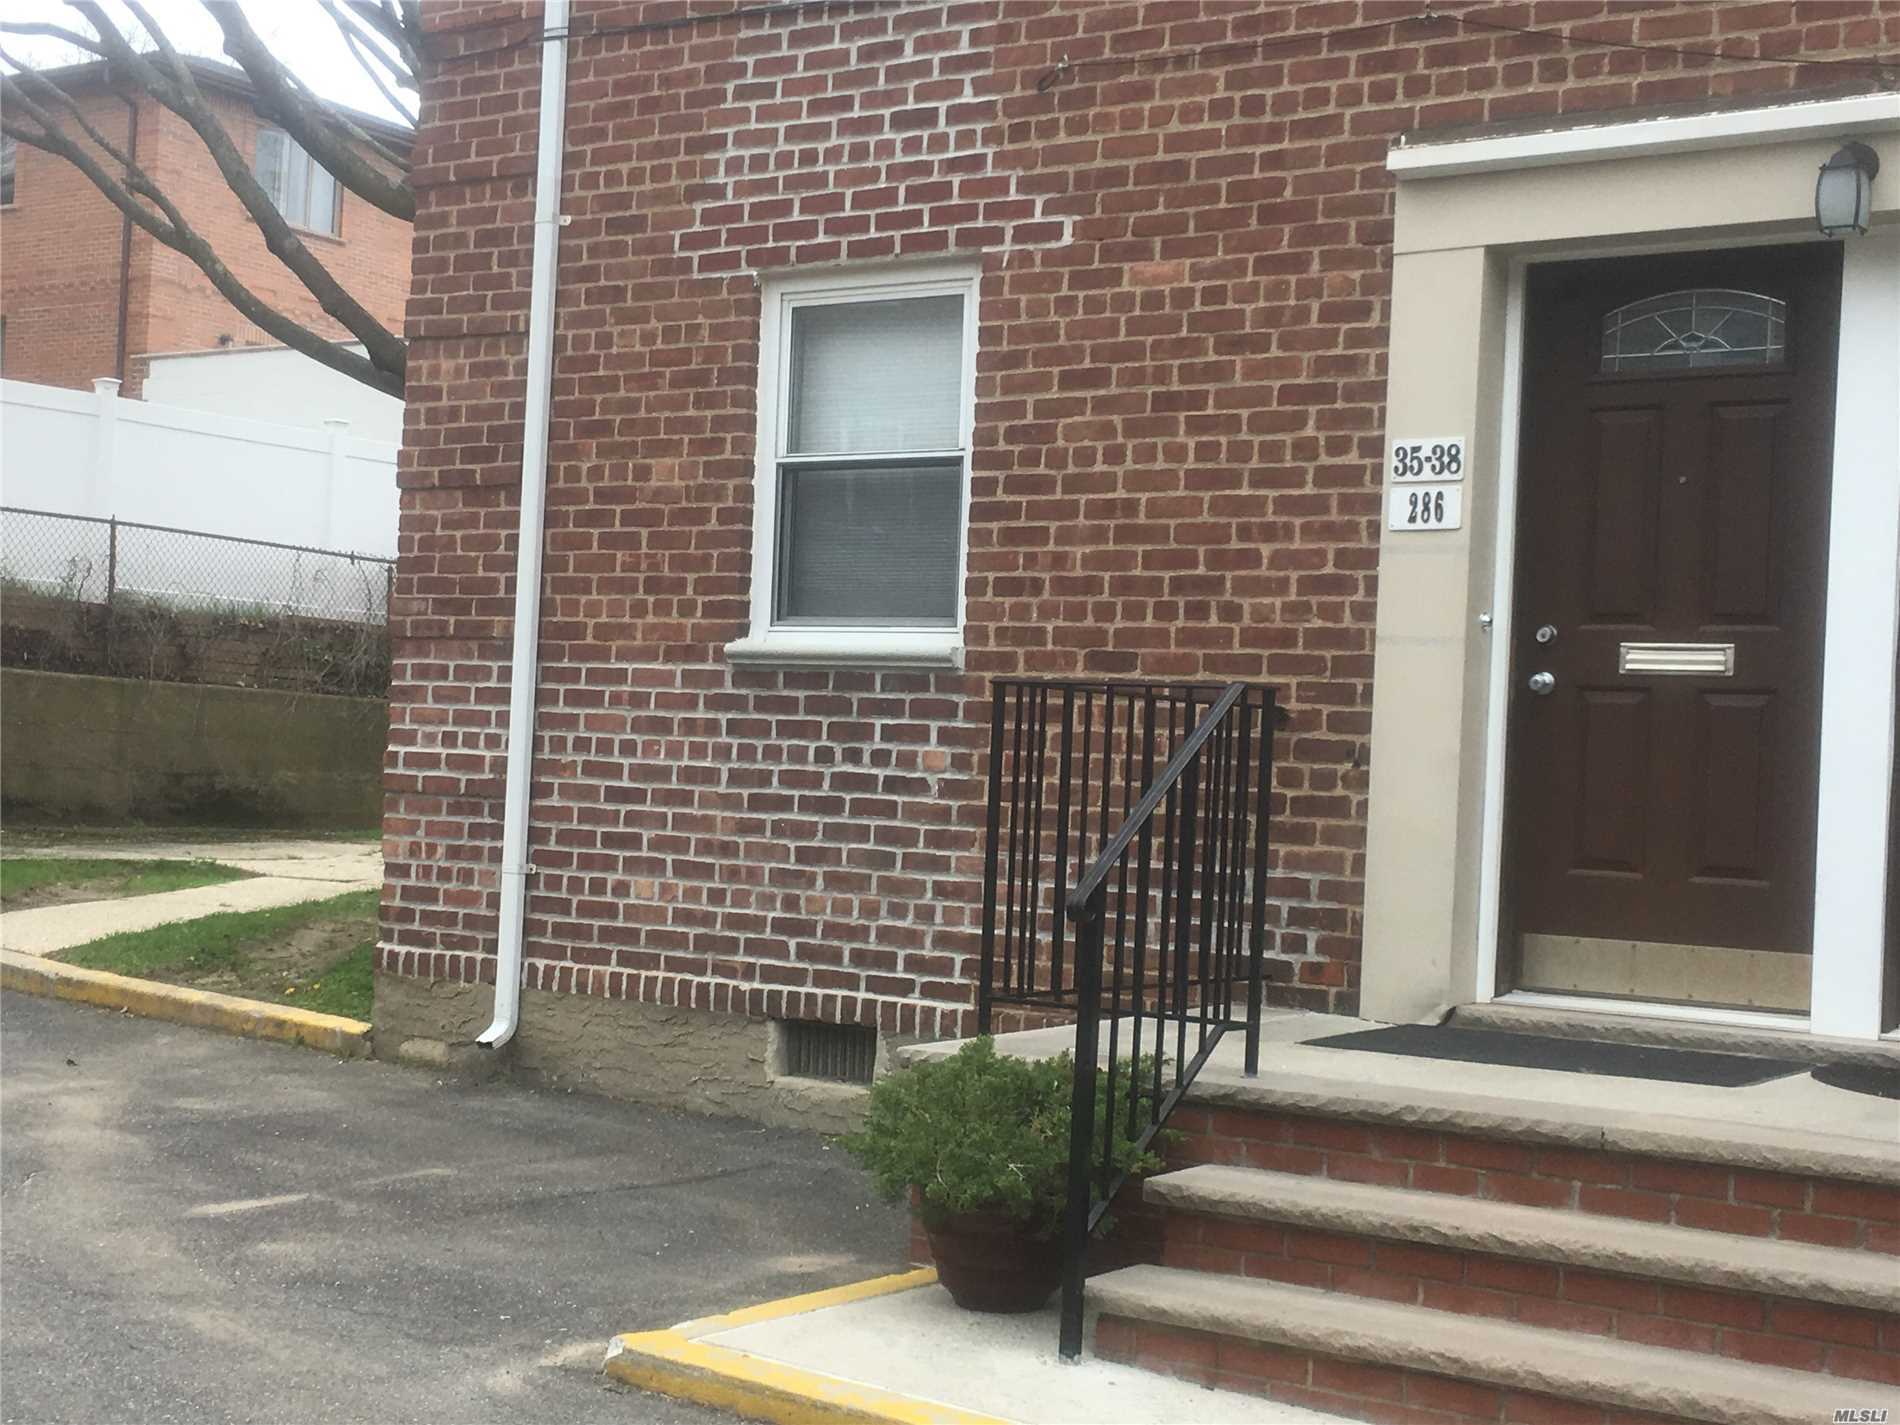 Renovated Stainless Steel Appliance Kitchen Open Layout with Living/Dining Room! Low maintenance. Corner Bright Separate Entrance Upper 1-Bedroom Co-op! Convenient Shopping, Restaurants, Supermarket,  LIRR! Bus to Subway, Flushing and More! Clearview Expressway! No Flip Tax!